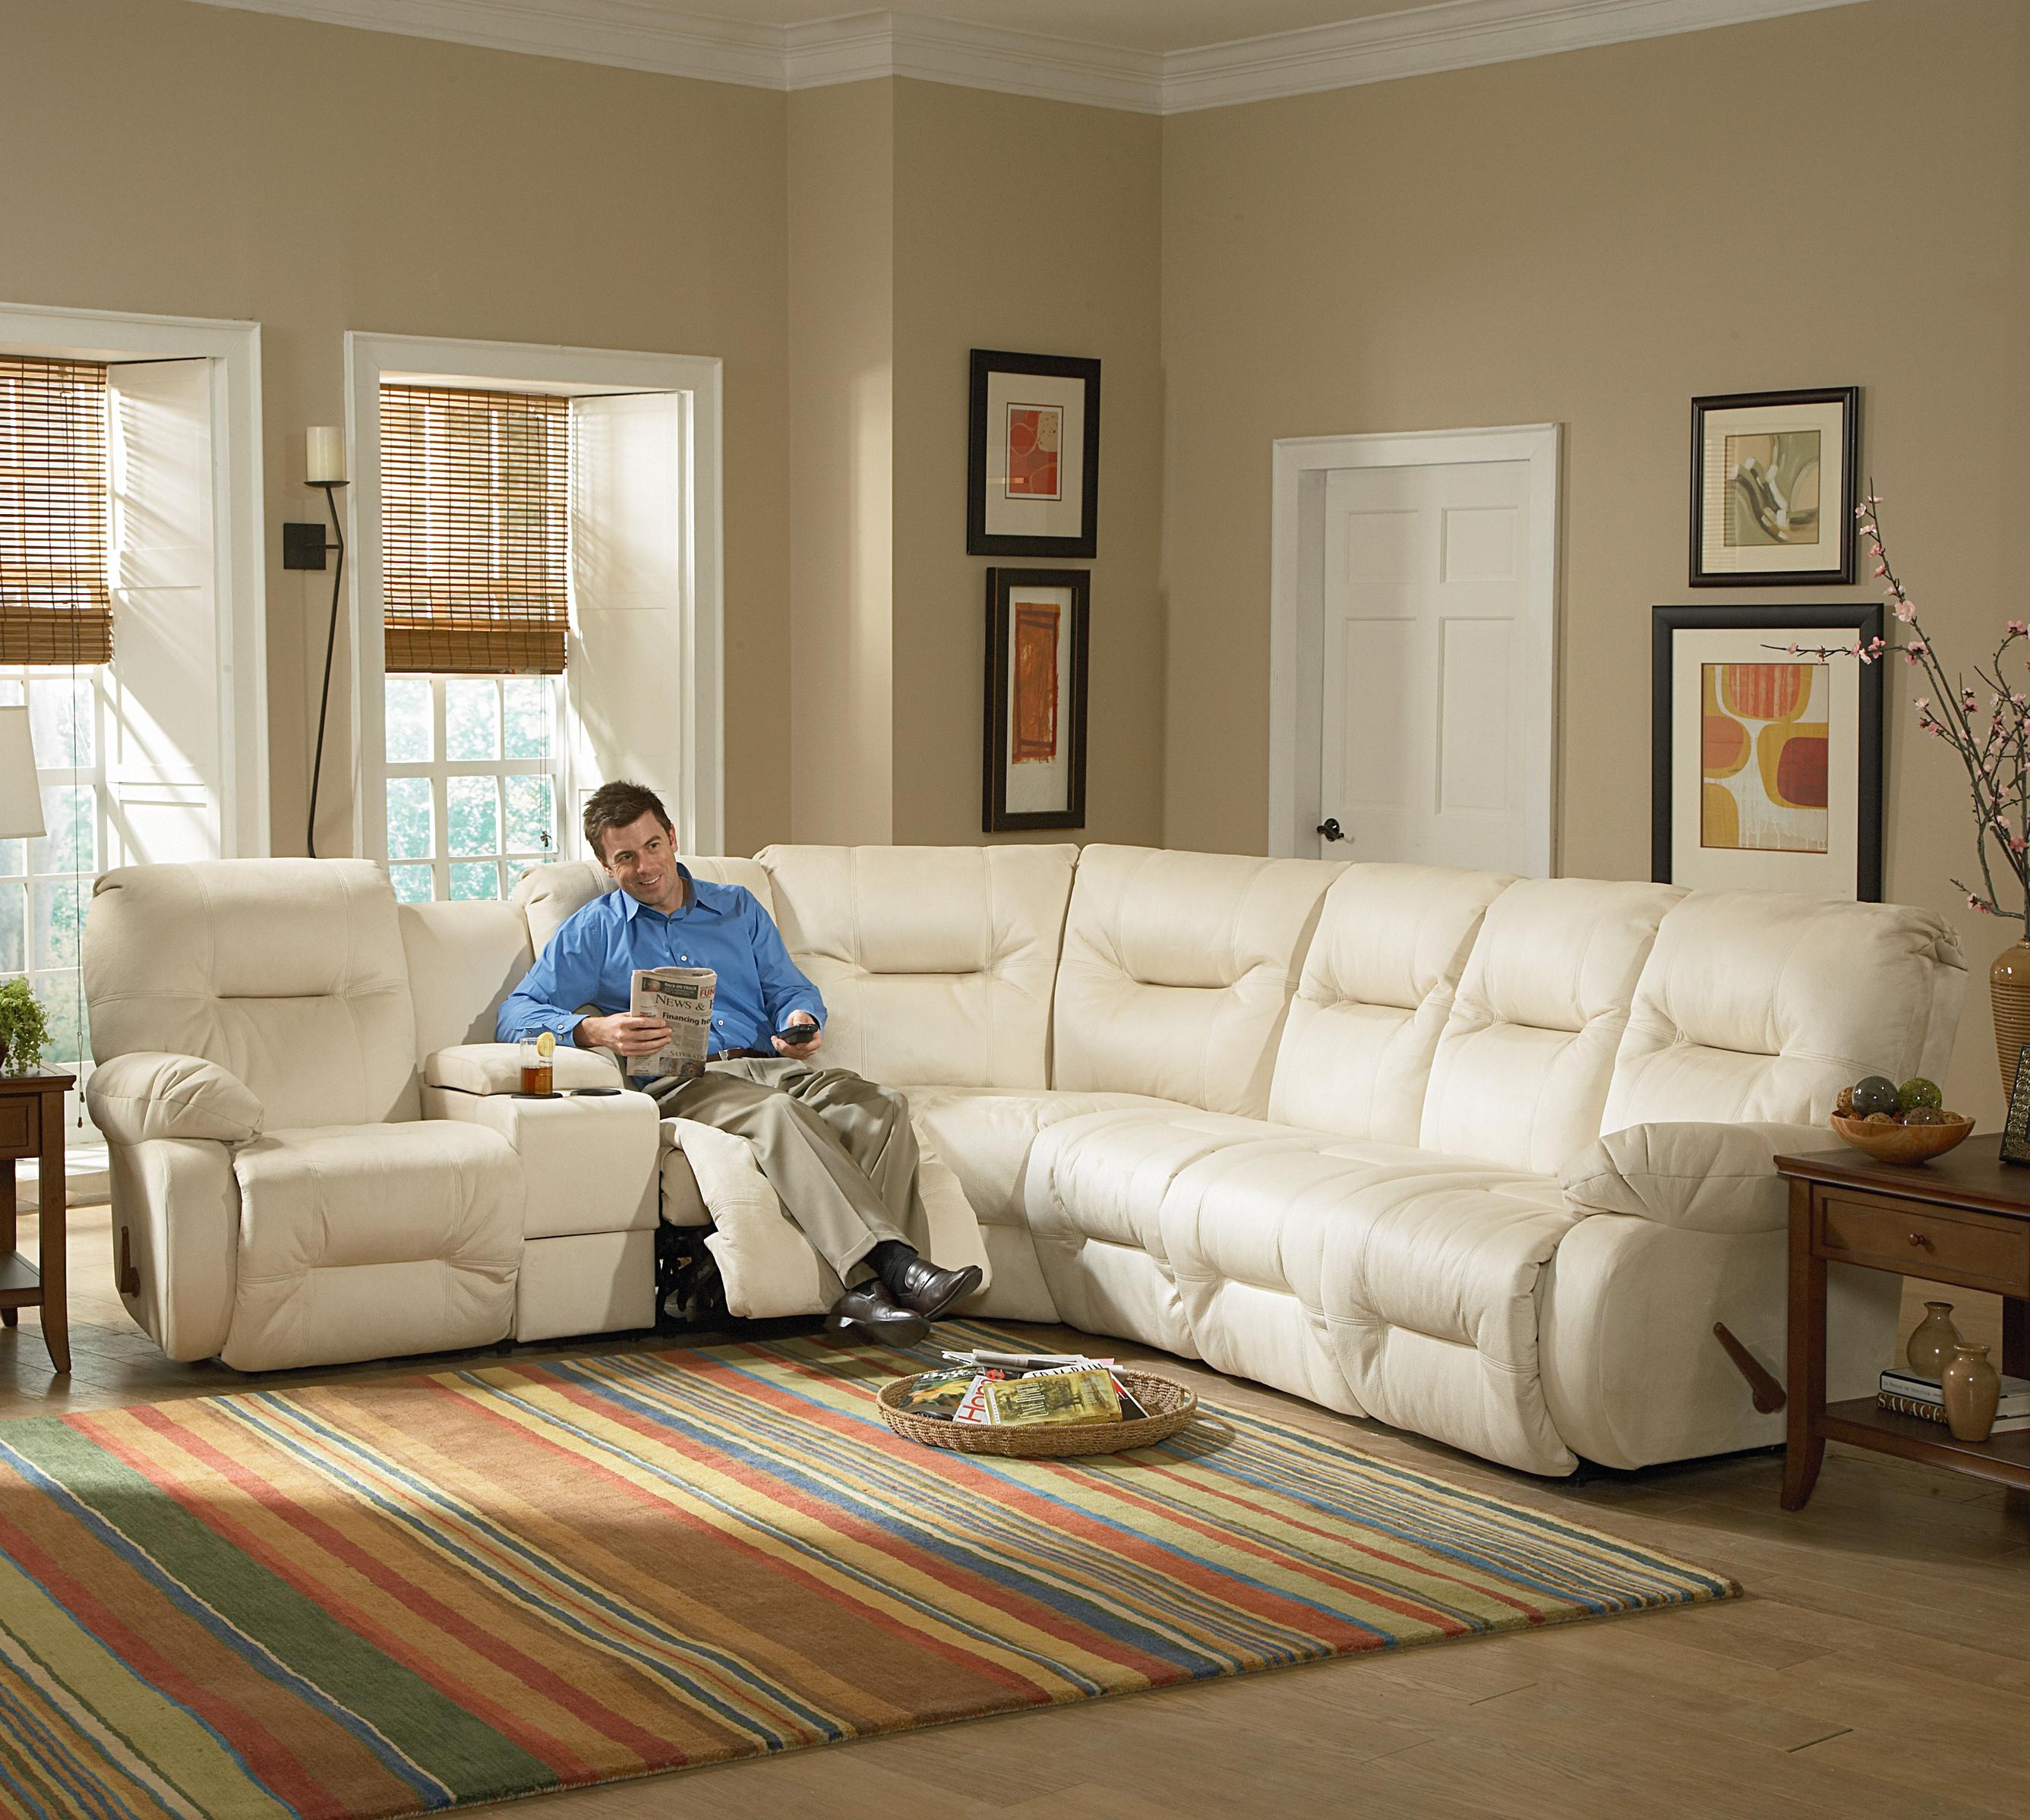 Home Furiture: Casual Power Reclining Sectional Sofa With Storage Console